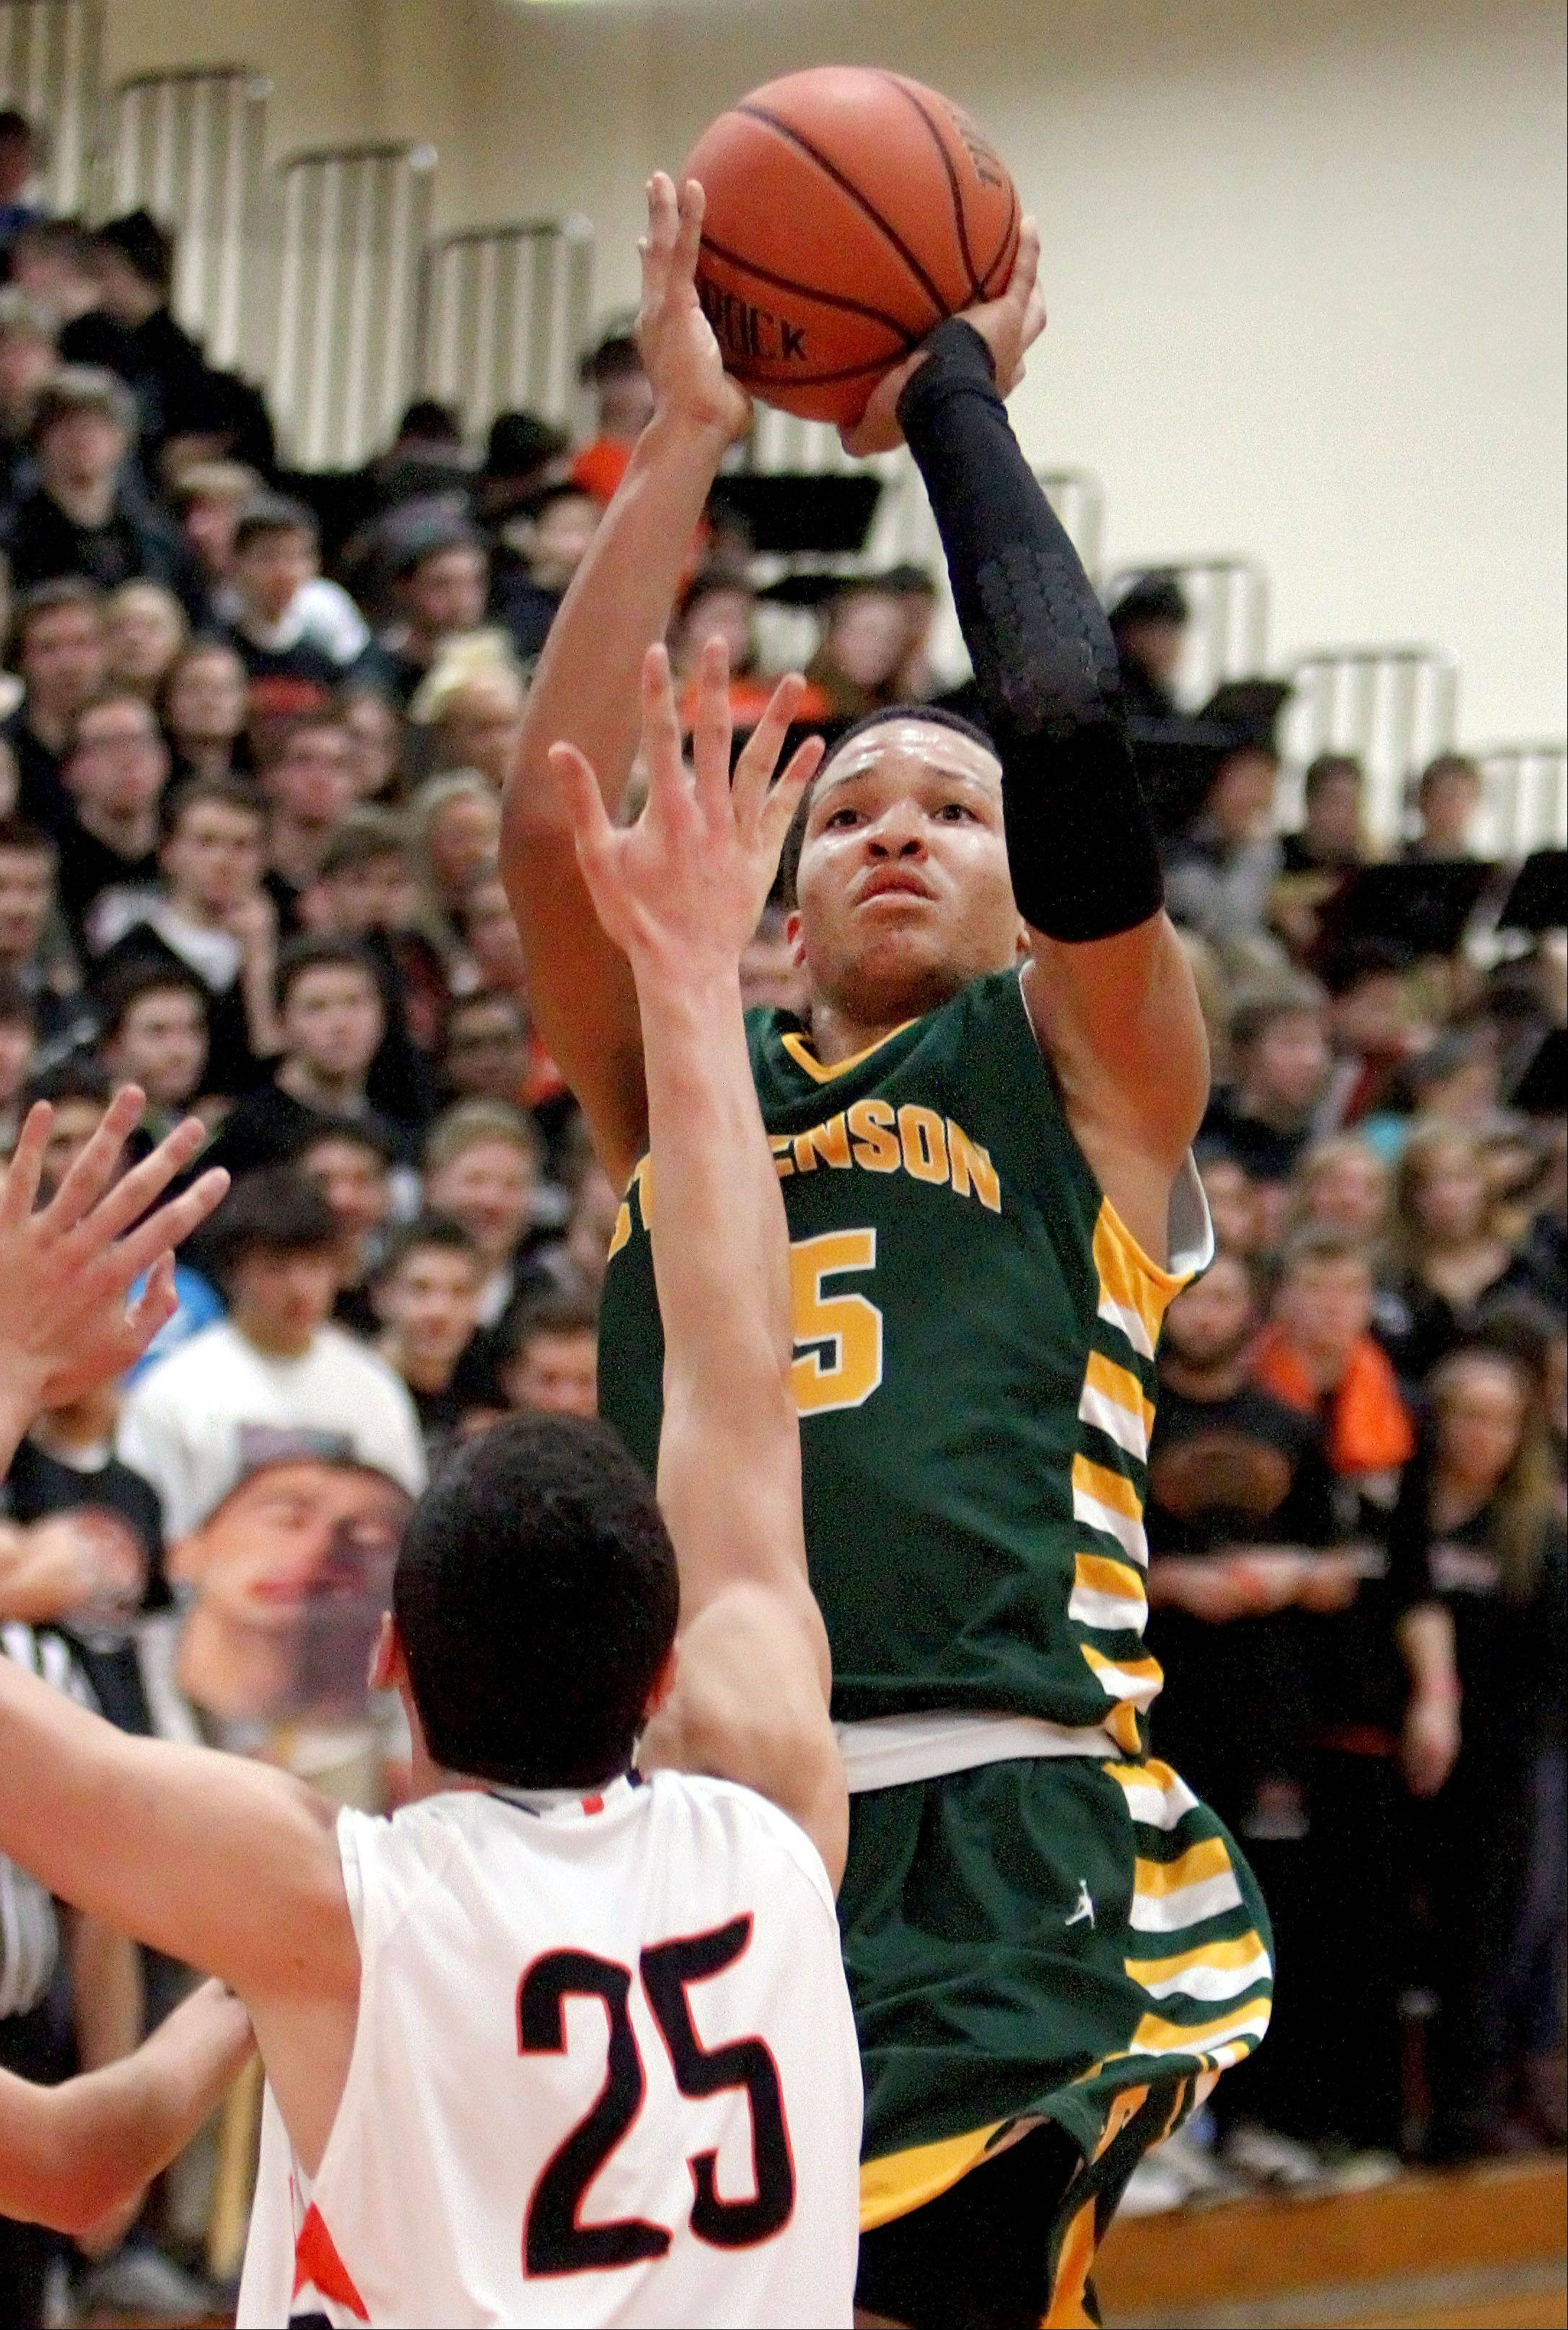 Stevenson's Jalen Brunson, here shooting against Libertyville earlier this season, helped the Patriots become the first Lake County team to win Proviso West's boys basketball tournament Tuesday. Brunson finished with a game-high 23 points as Stevenson topped Morgan Park 67-55.